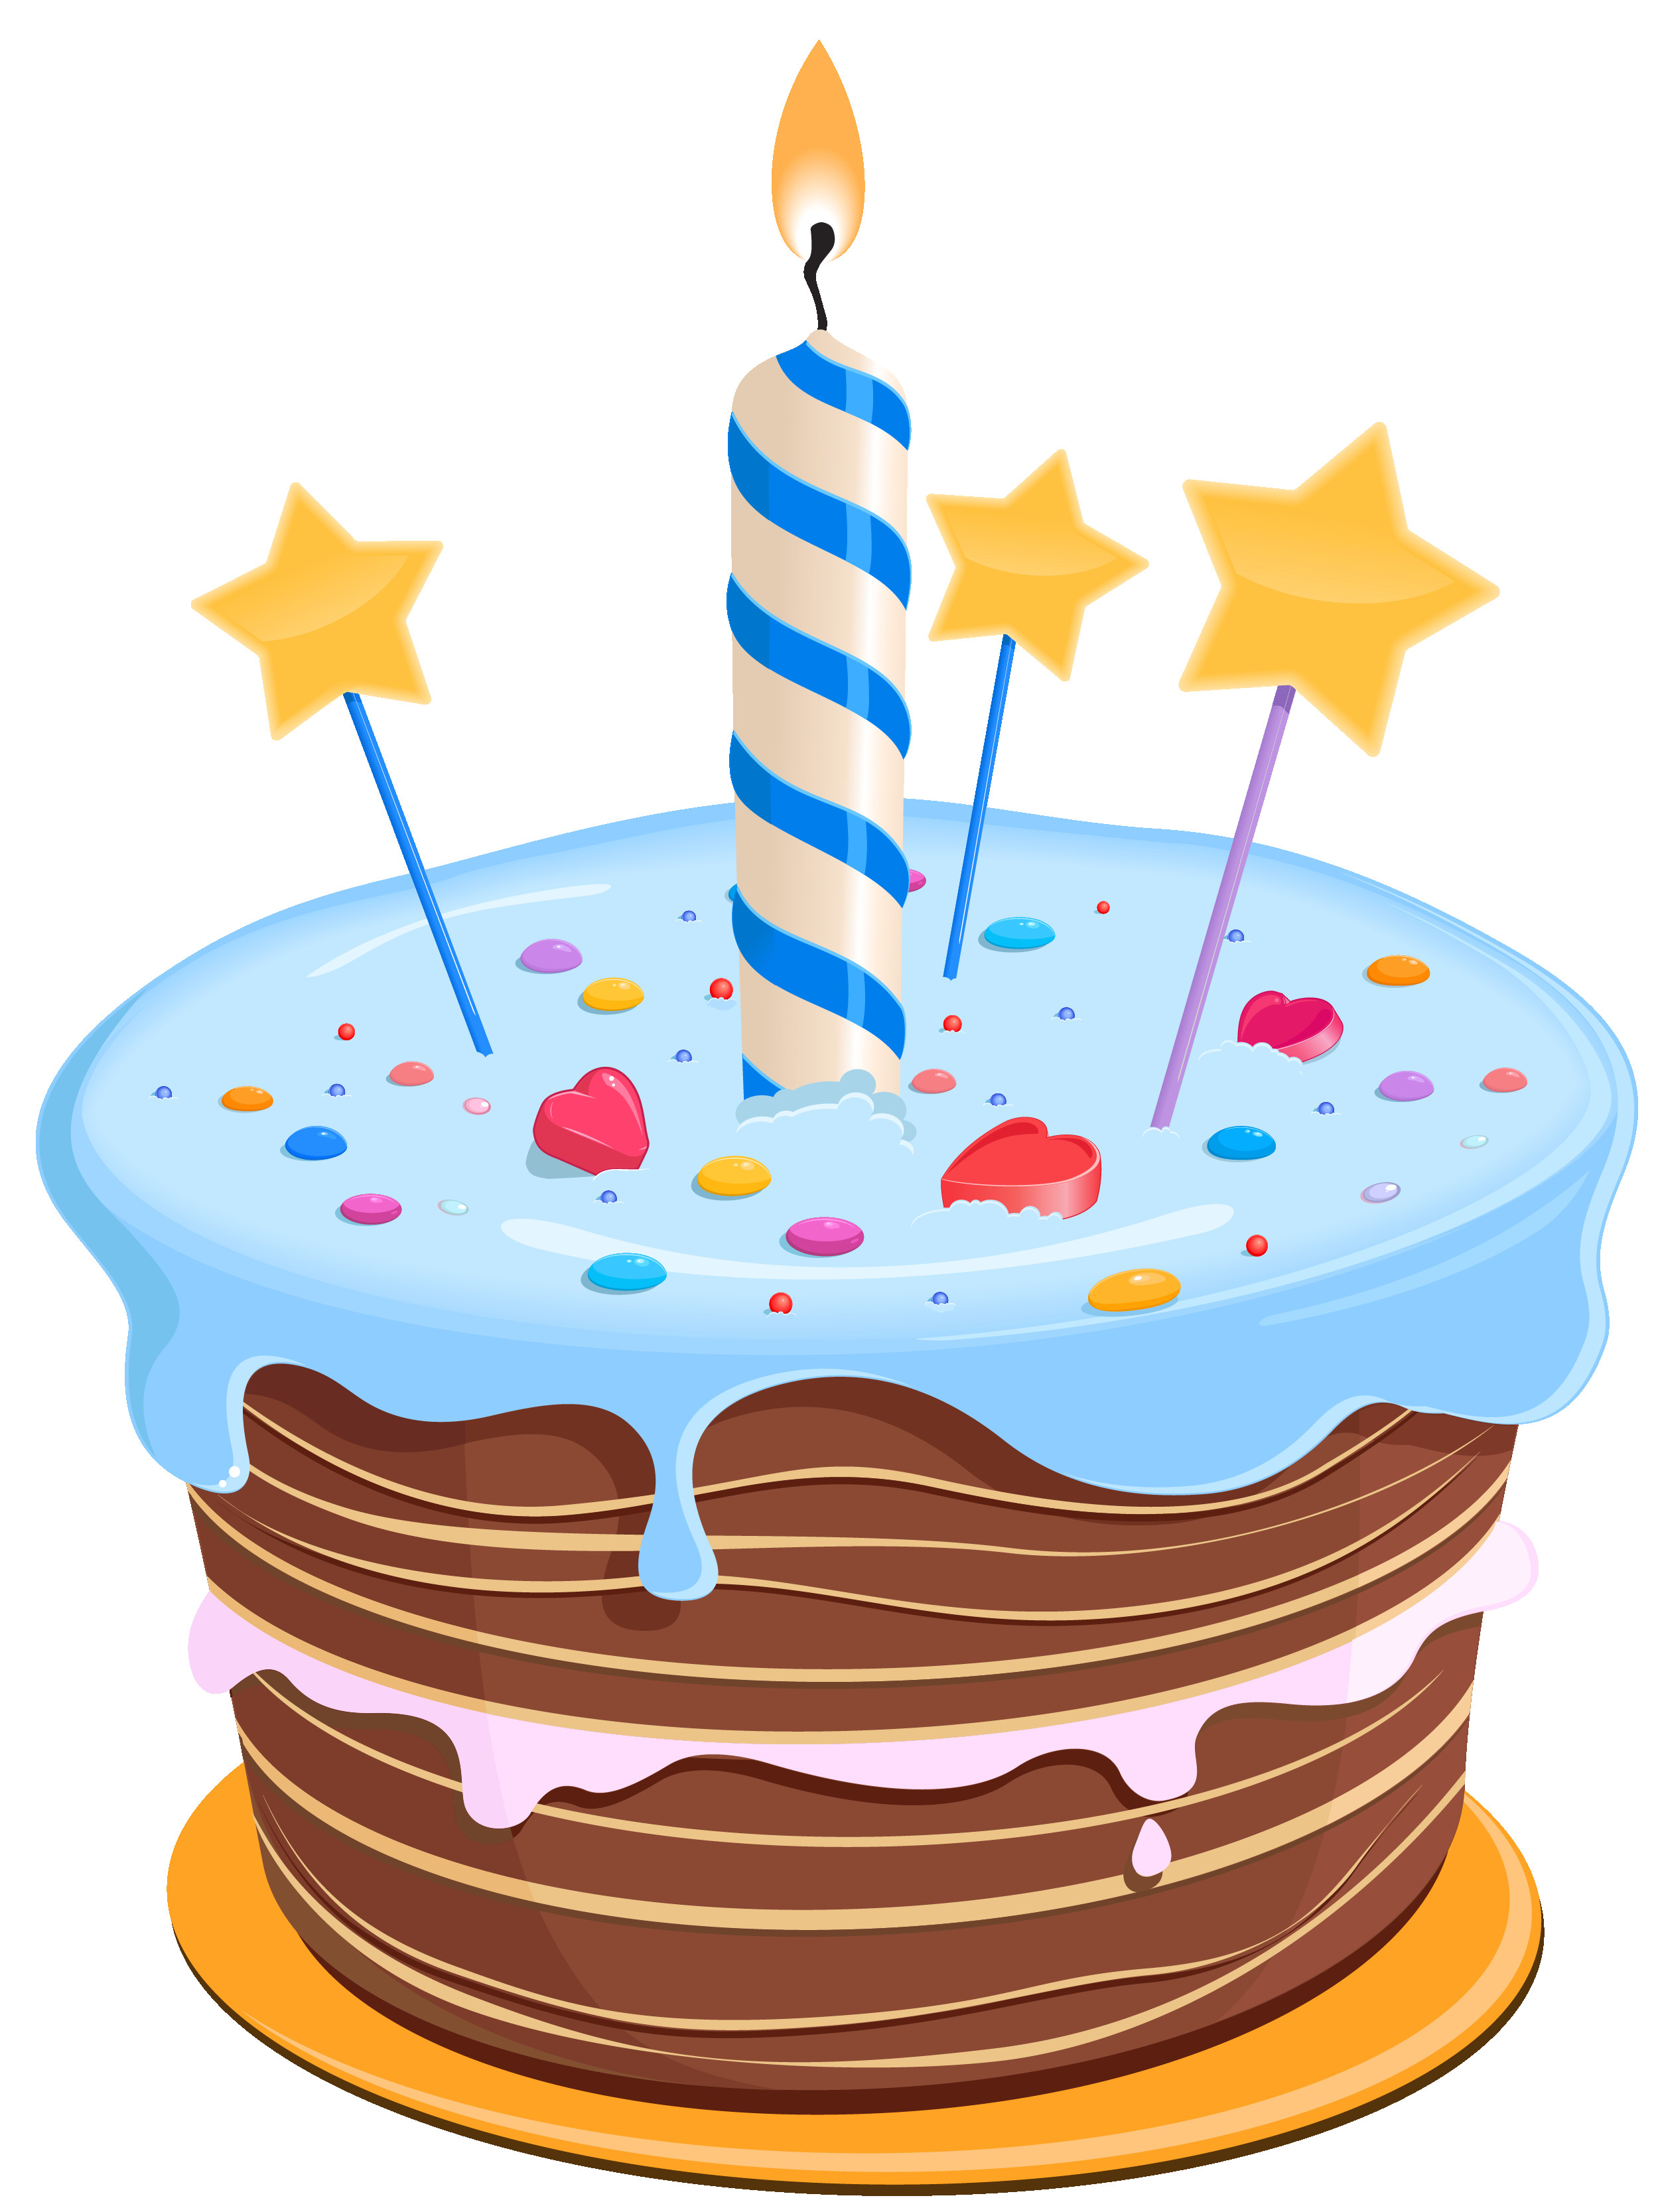 Best ideas about Clip Art Birthday Cake . Save or Pin Set these cute birthday cake clipart as desktop profile in Now.